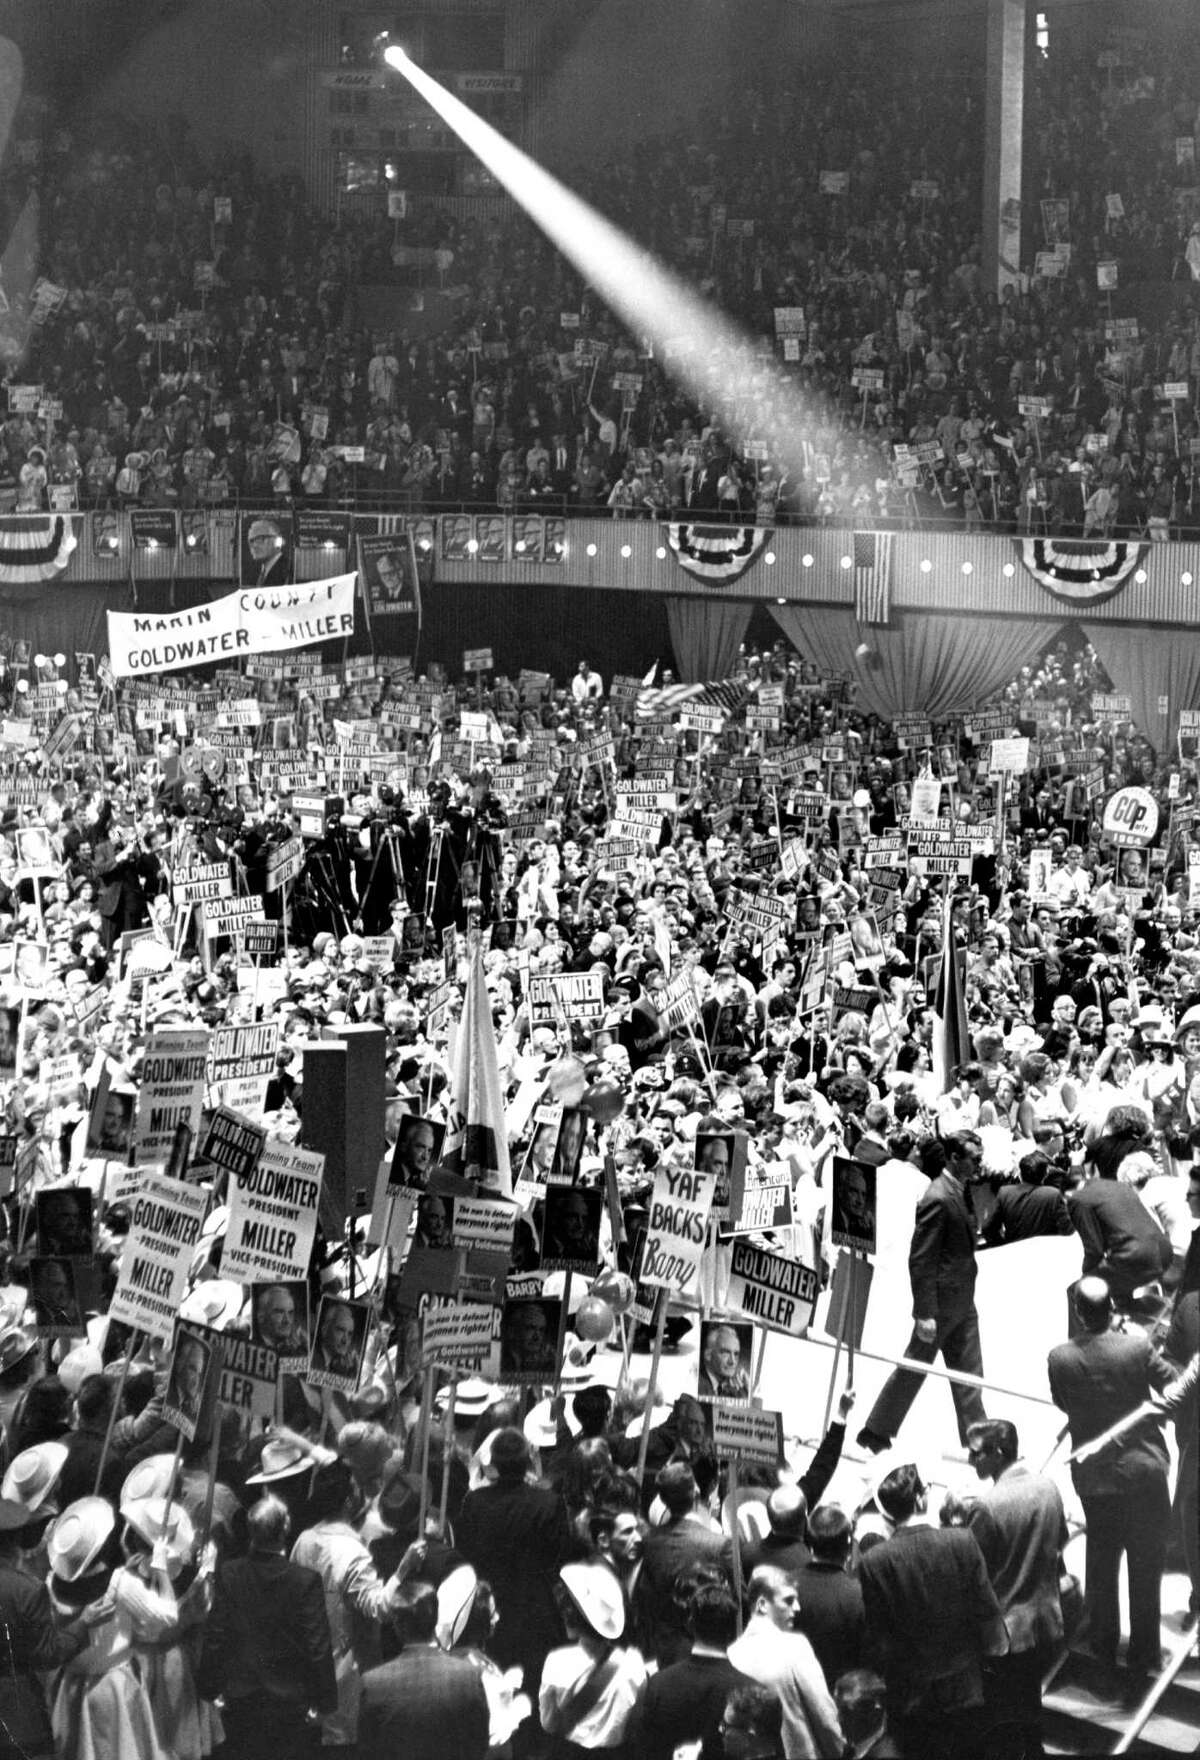 Delegates inside the Cow Palace at the 1964 Republican Convention.